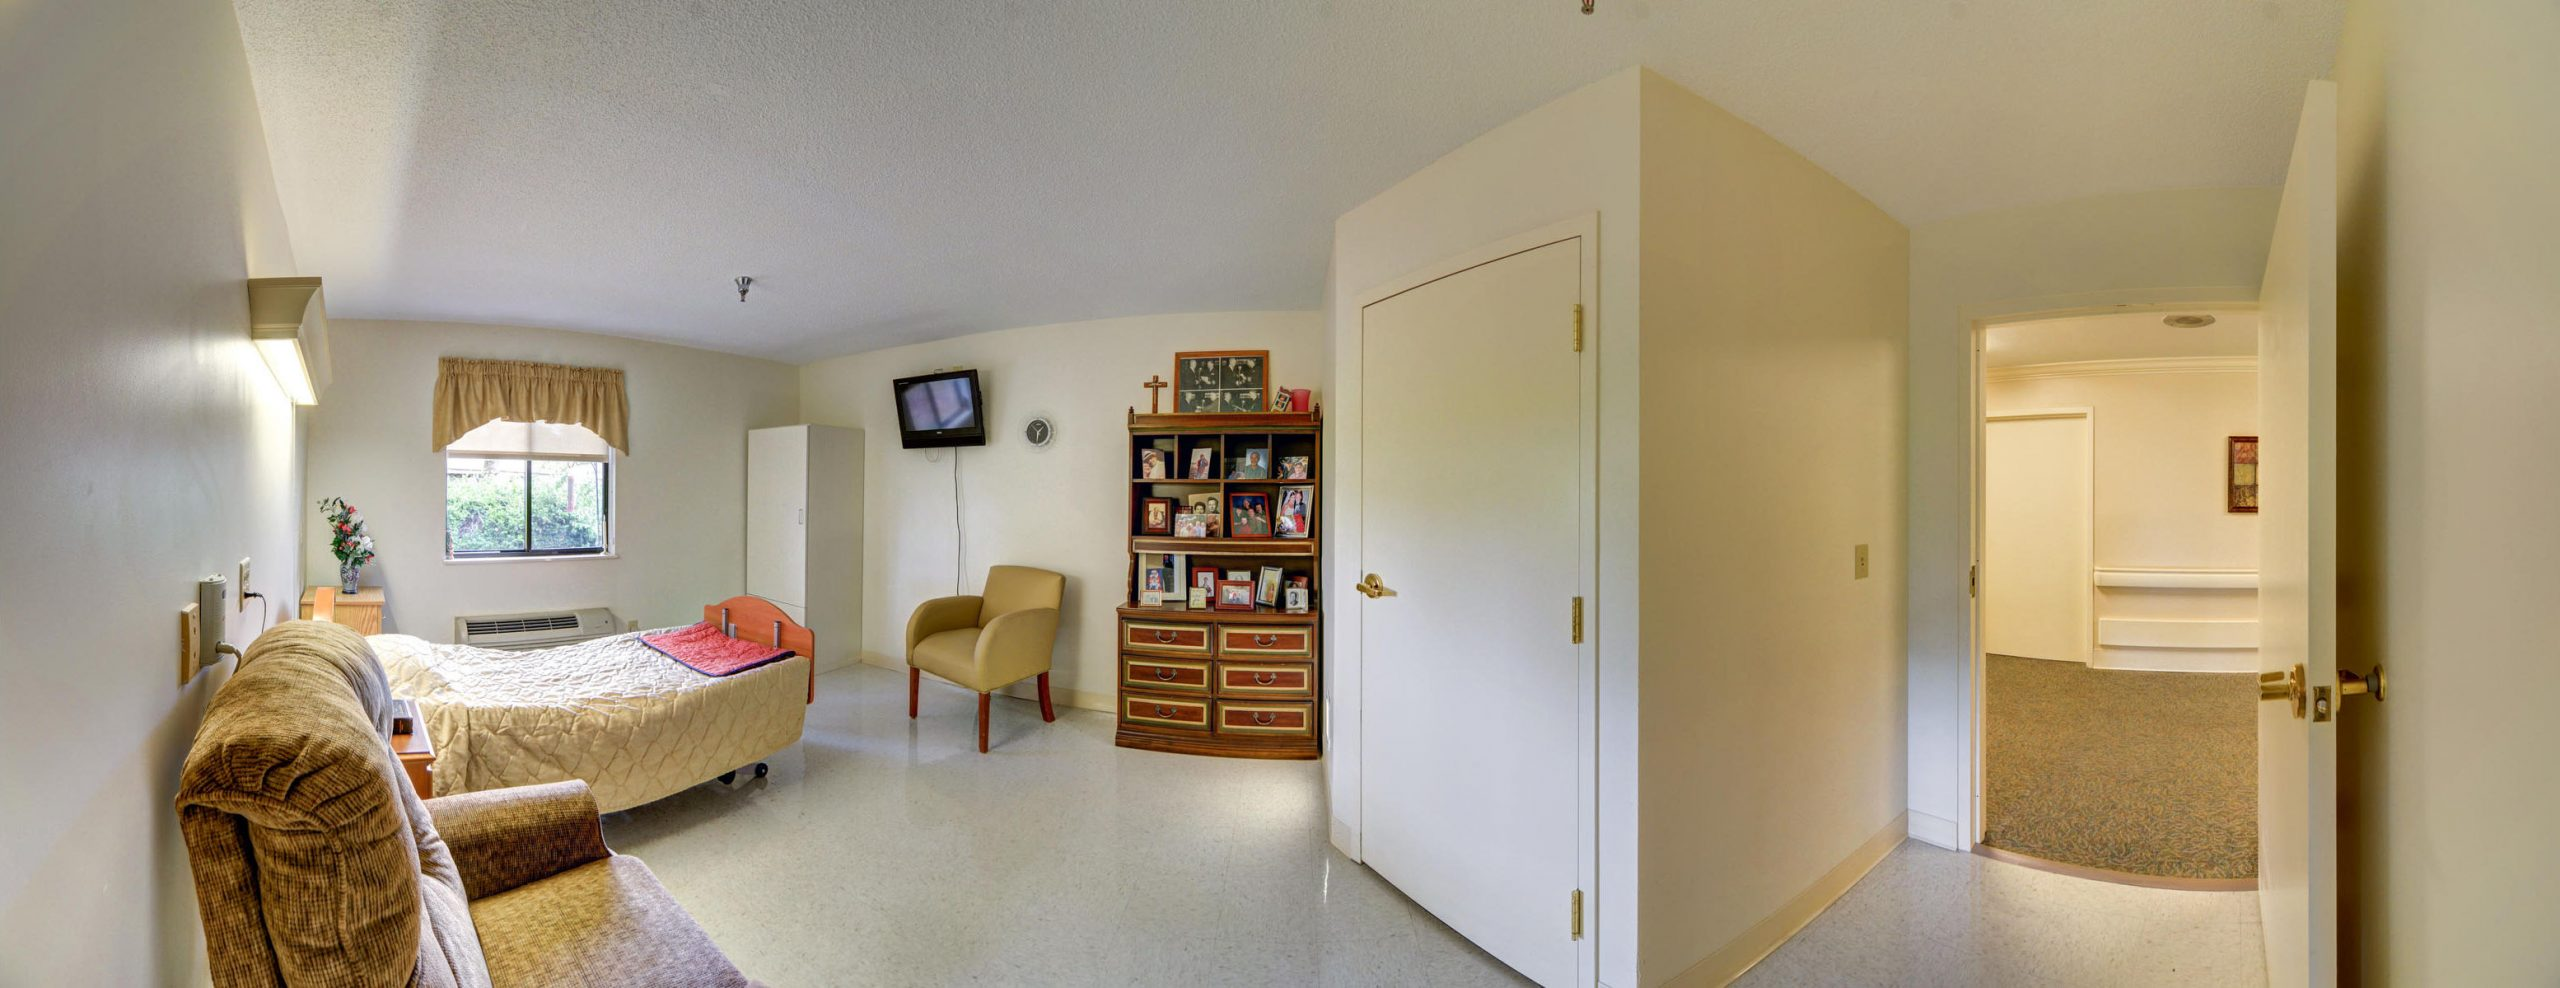 Stonerise Belmont private patient room with bed, recliner chair and TV